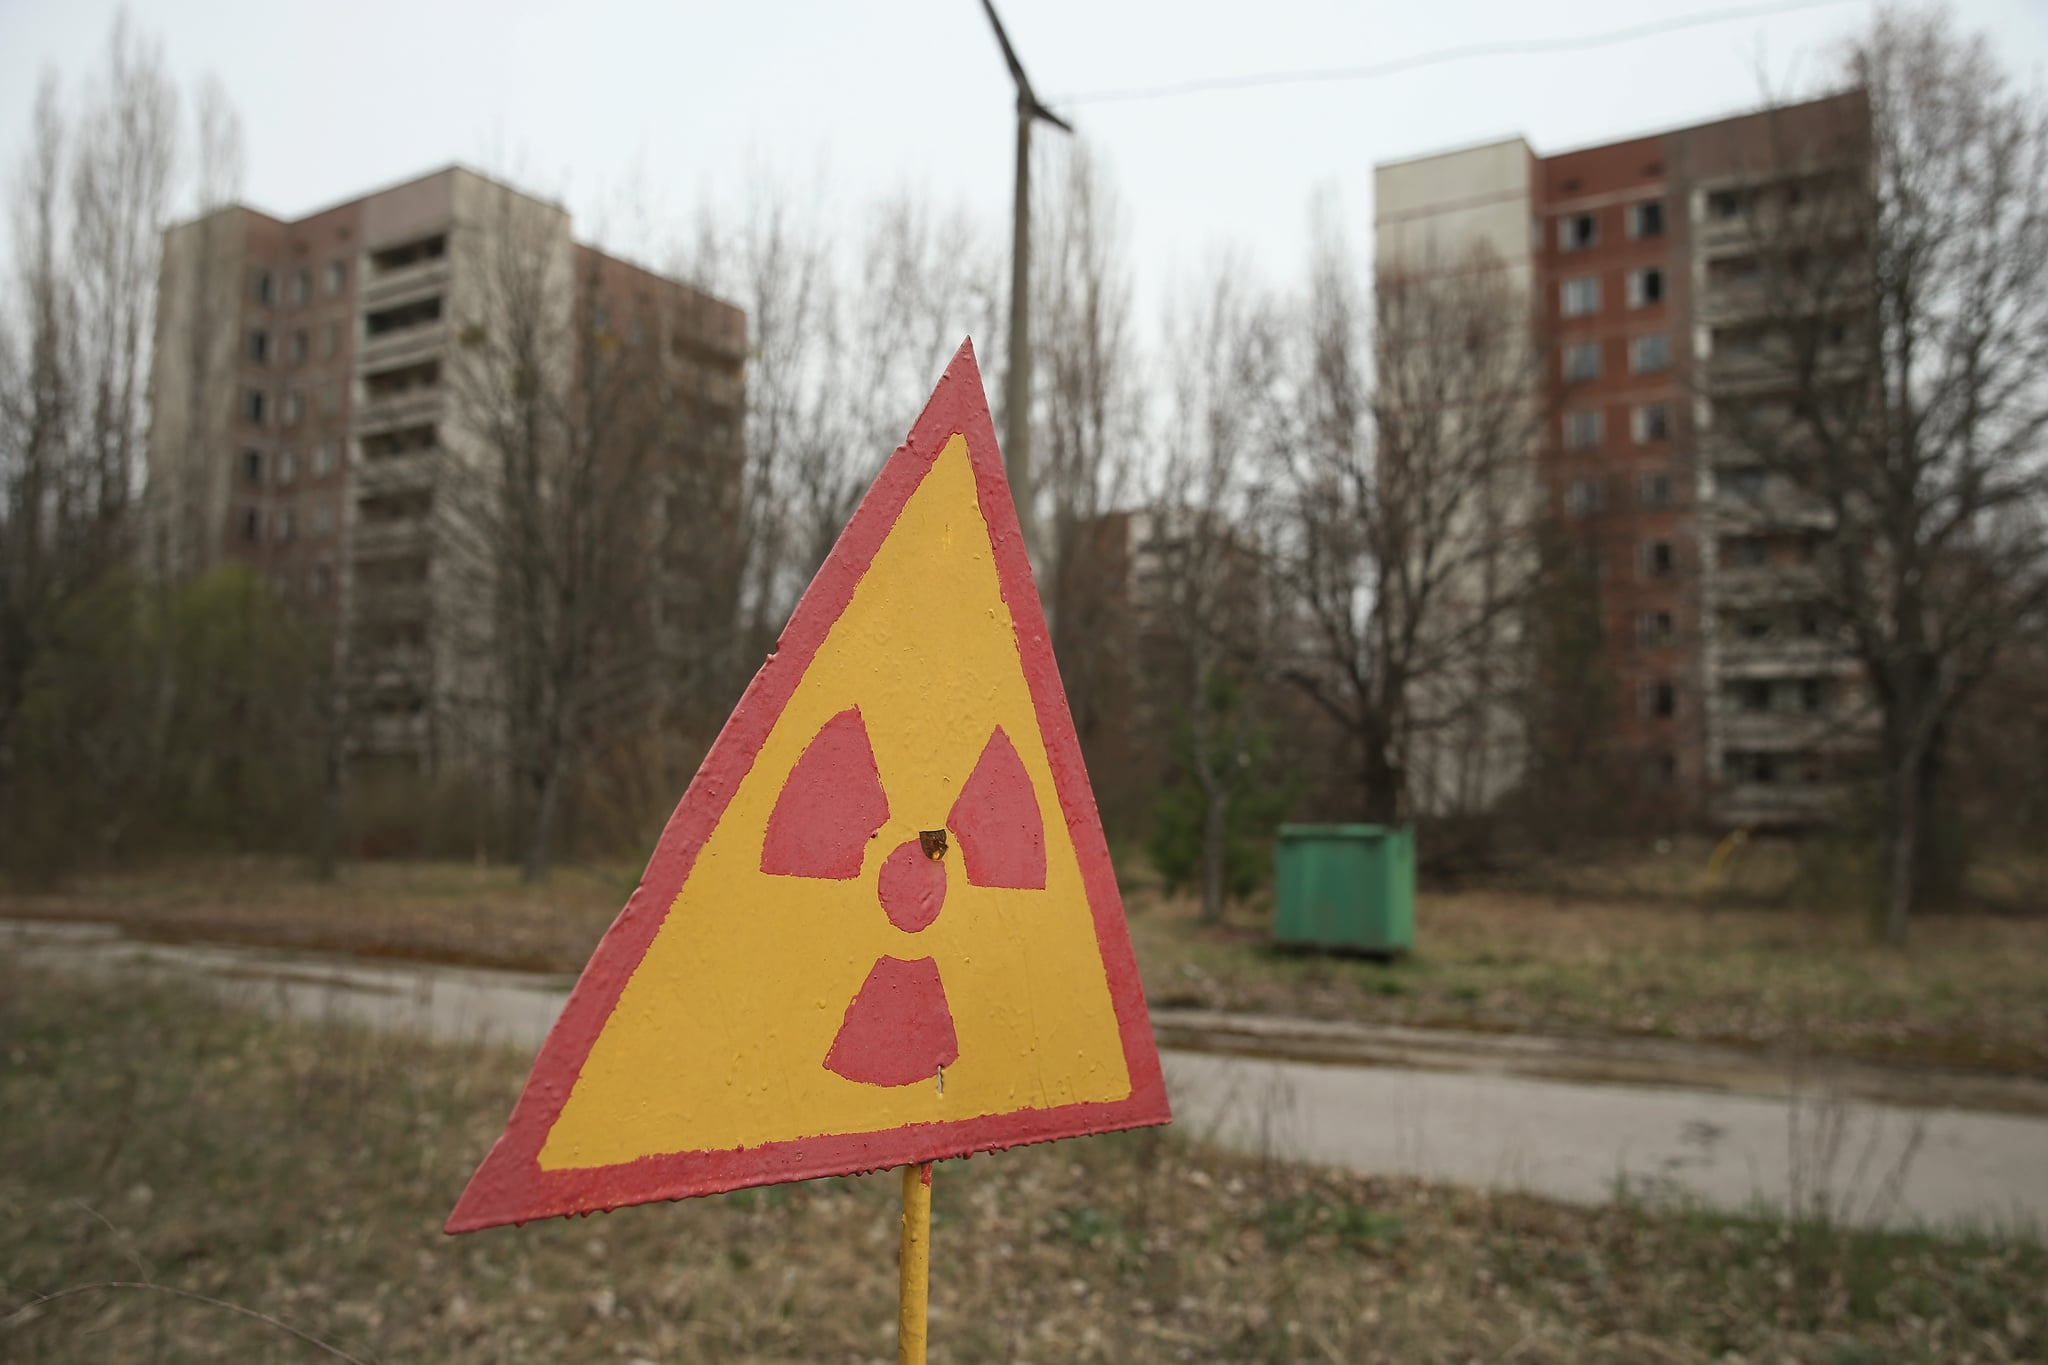 PRIPYAT, UKRAINE - APRIL 09:  A sign warns of radiation contamination near former apartment buildings on April 9, 2016 in Pripyat, Ukraine. Pripyat, built in the 1970s as a model Soviet city to house the workers and families of the Chernobyl nuclear power plant, now stands abandoned inside the Chernobyl Exclusion Zone, a restricted zone contaminated by radiation from the 1986 meltdown of reactor number four at the nearby Chernobyl plant in the world's worst civilian nuclear accident that spewed radiaoactive fallout across the globe. Authorities evacuated approximately 43,000 people from Pripyat in the days following the disaster and the city, with its high-rise apartment buildings, hospital, shops, schools, restaurants, cultural center and sports facilities, has remained a ghost-town ever since. The world will soon commemorate the 30th anniversary of the April 26, 1986 Chernobyl disaster. Today tour operators bring tourists in small groups to explore certain portions of the exclusion zone.  (Photo by Sean Gallup/Getty Images)